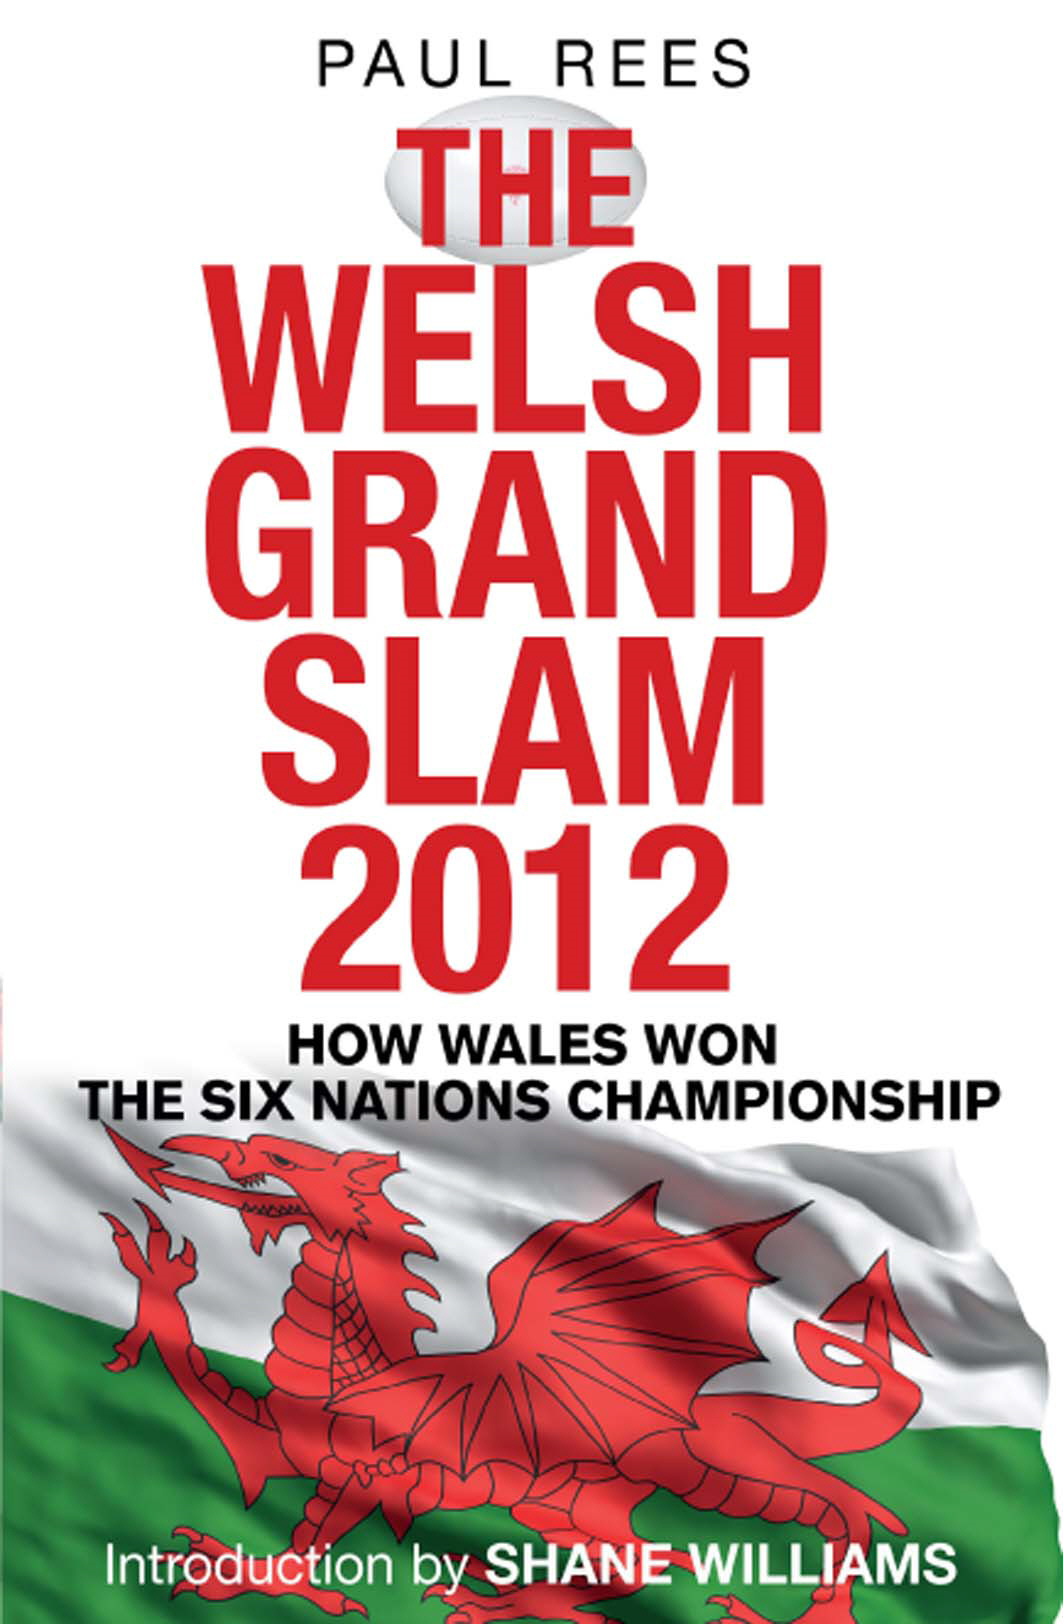 The Welsh Grand Slam 2012 How Wales Won the Six Nations Championship